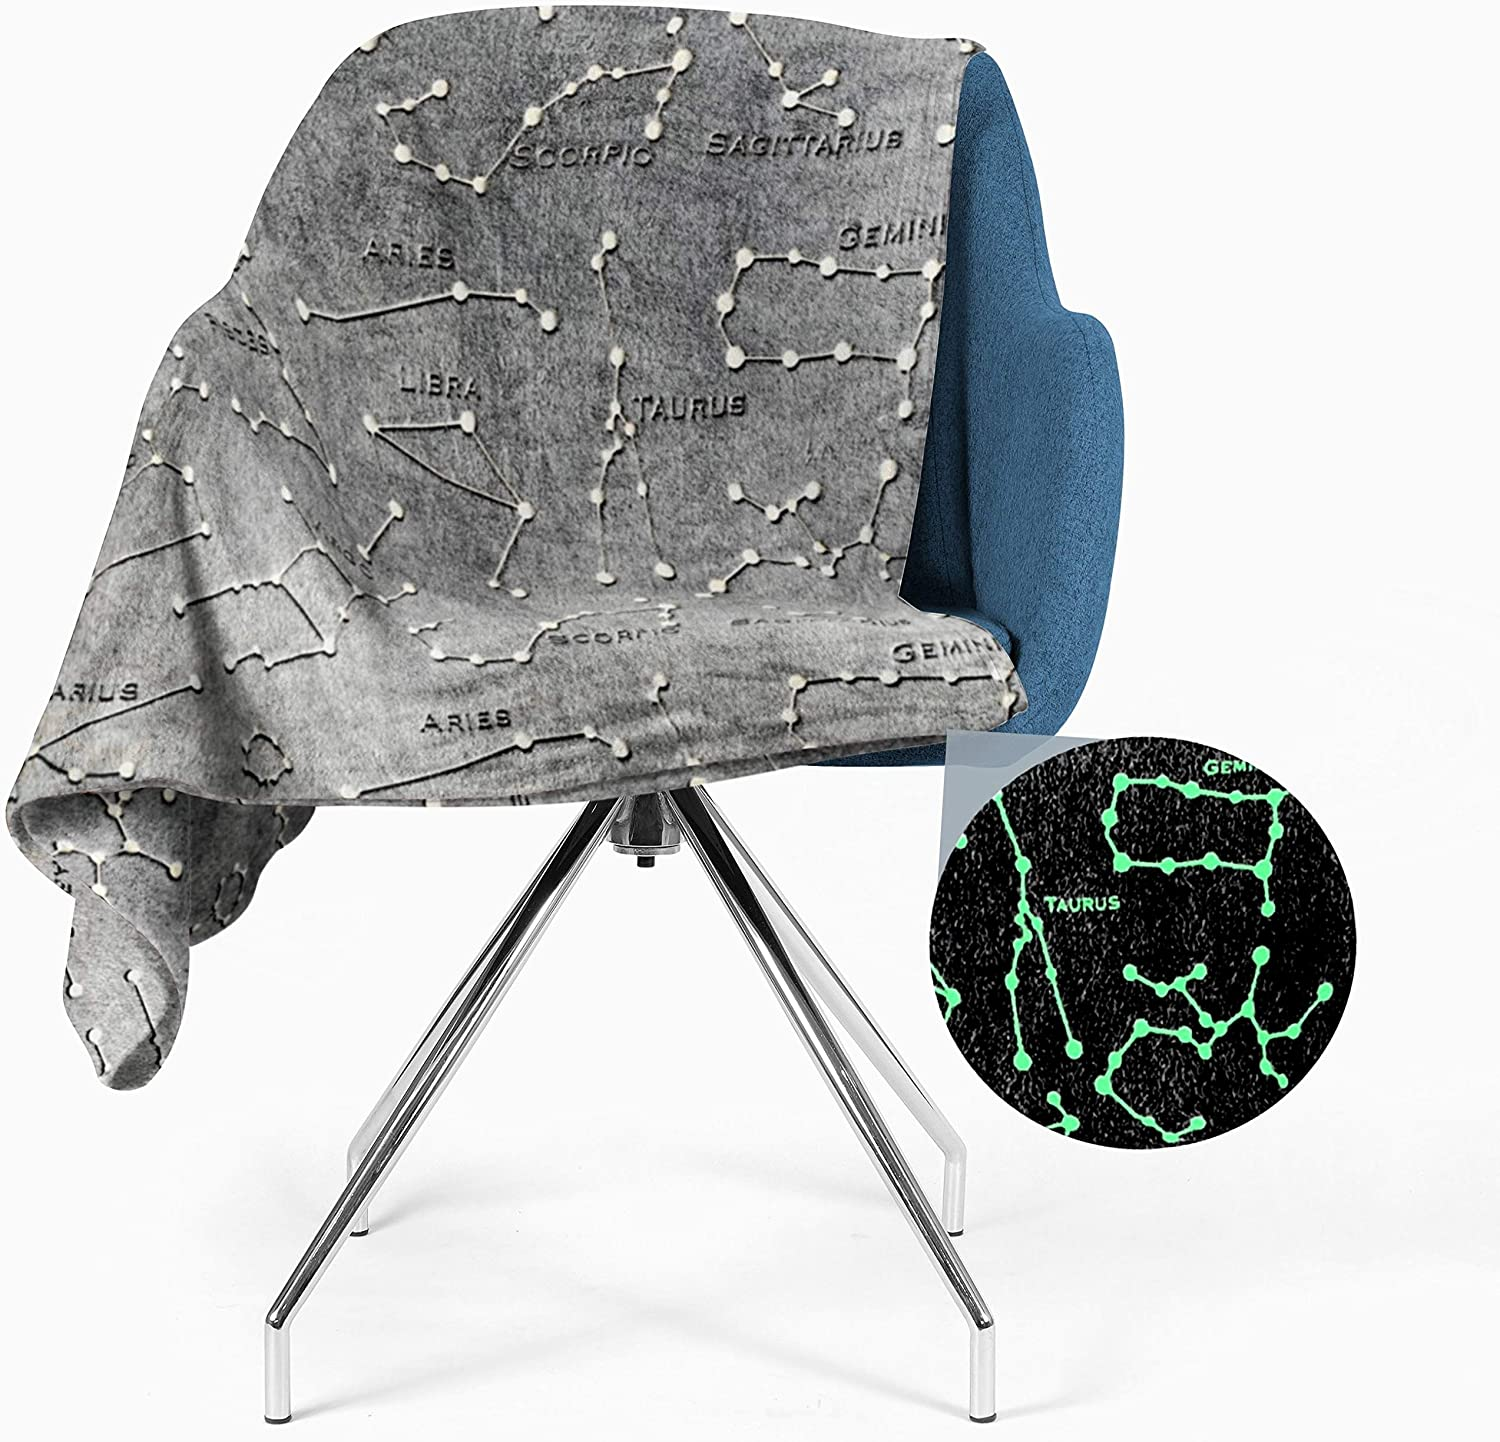 astronomy-gifts-blanket